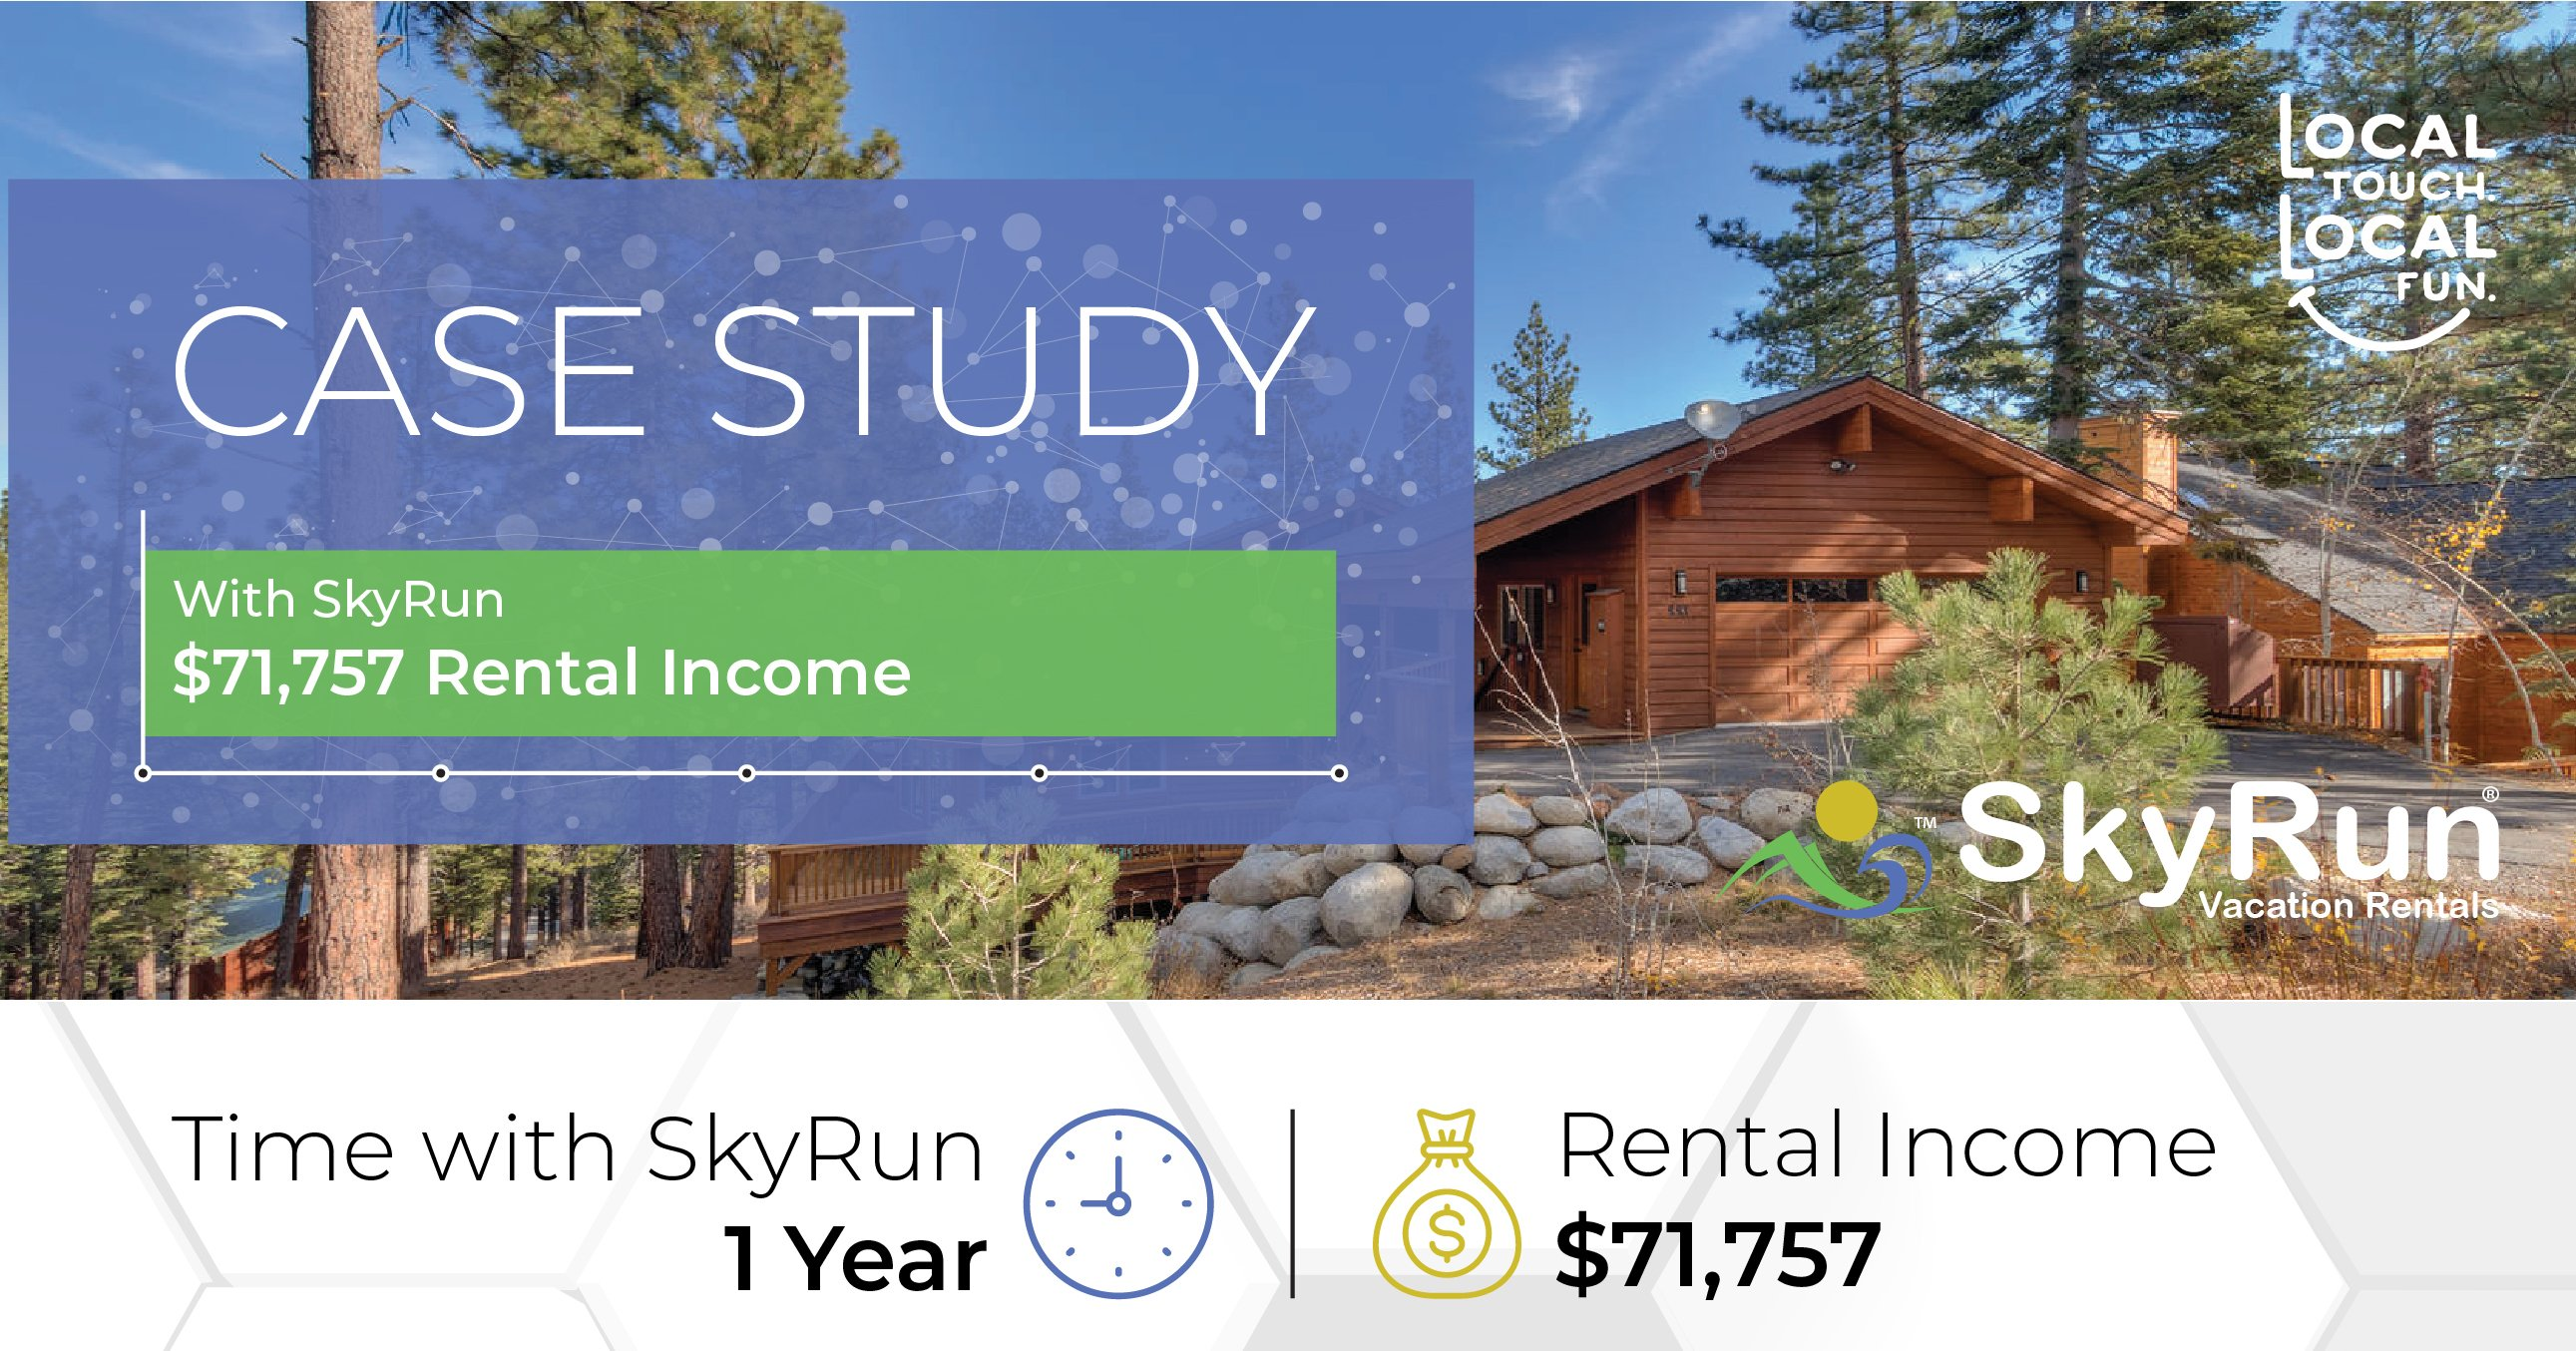 Case Study: Northstar Conifer Luxury Home